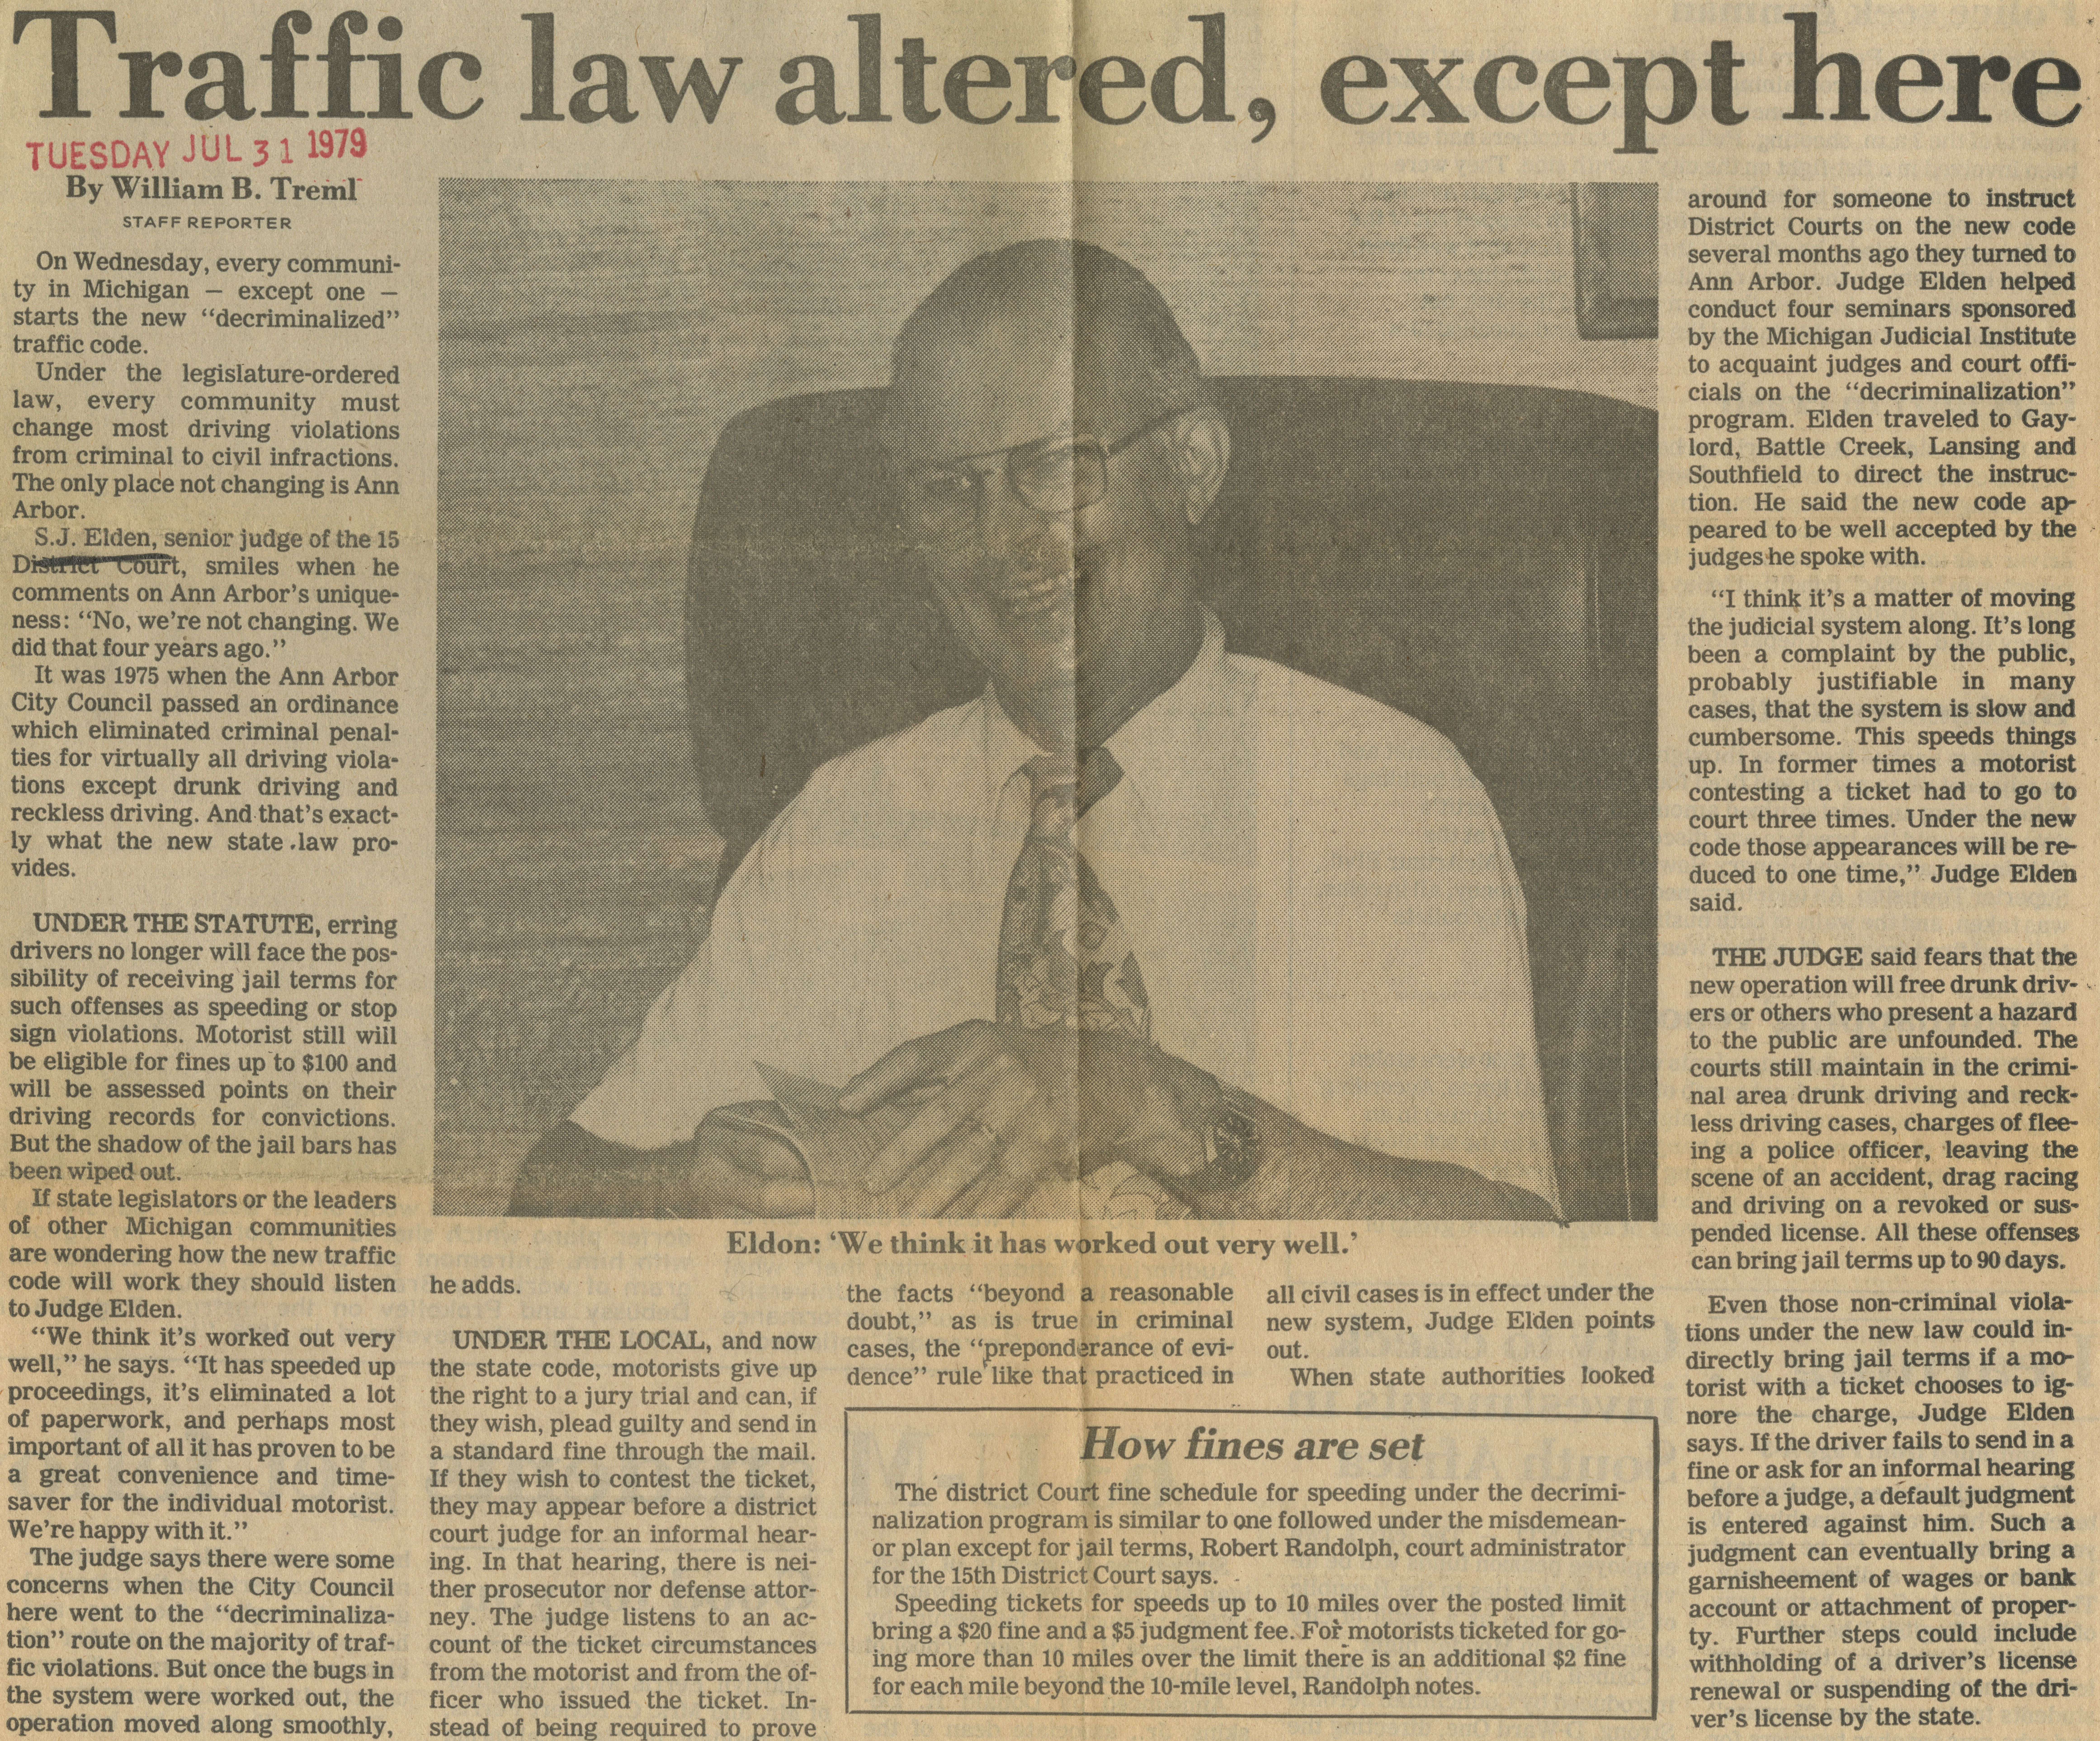 Traffic law altered, except here image